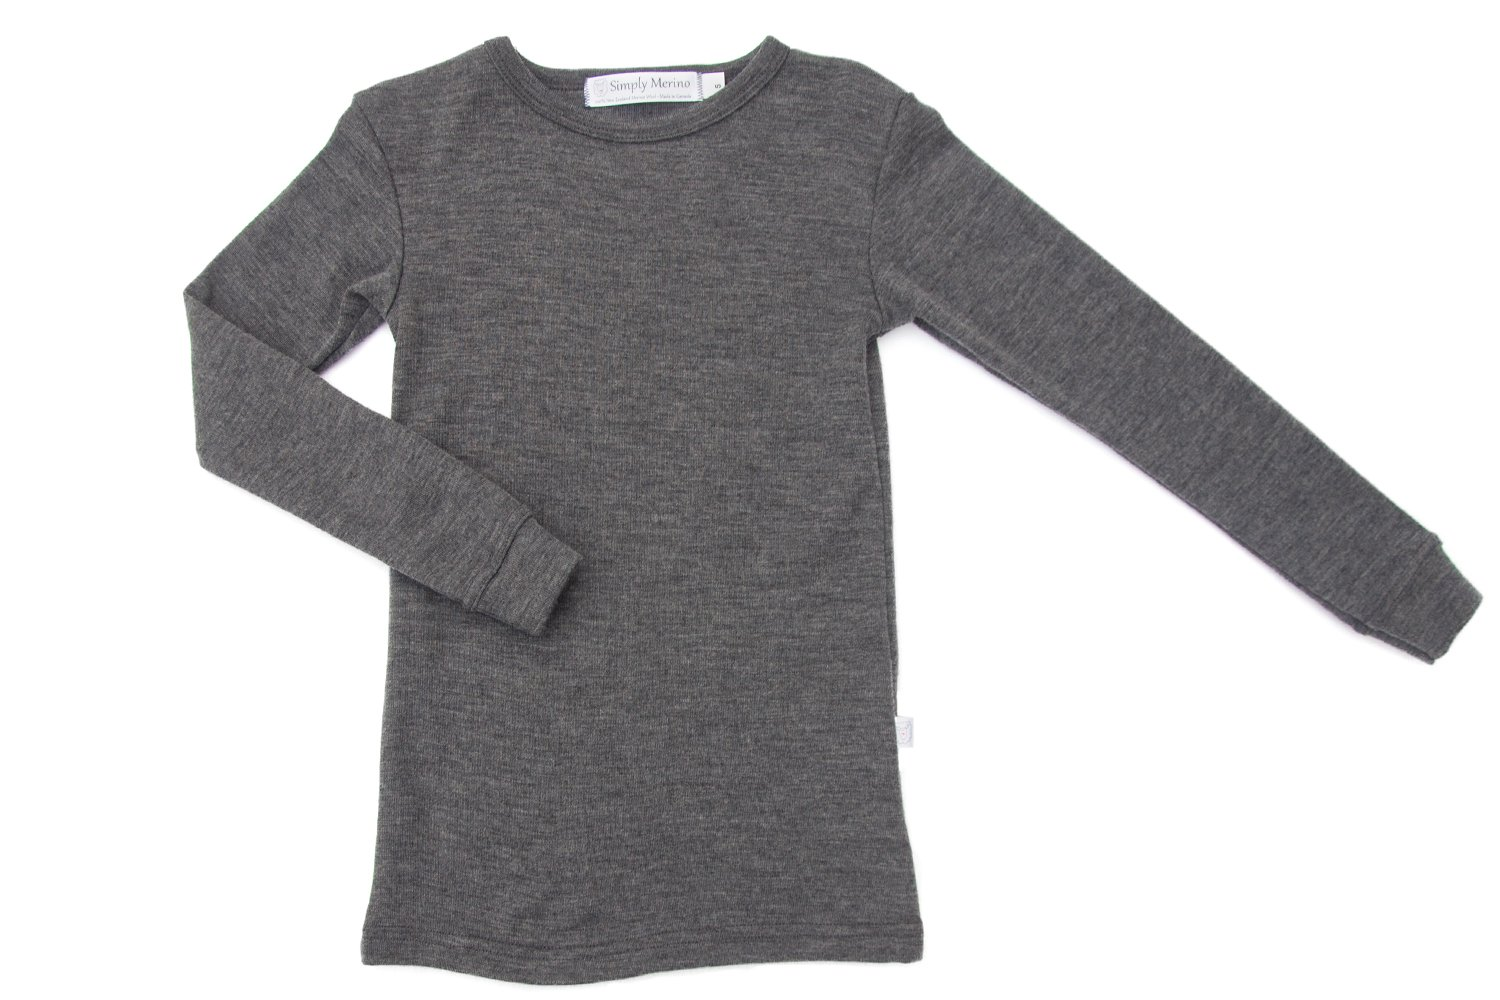 Pure Merino Wool Kids Thermal Top. Base layer Underwear PJ's. CHARCOAL Size 3T